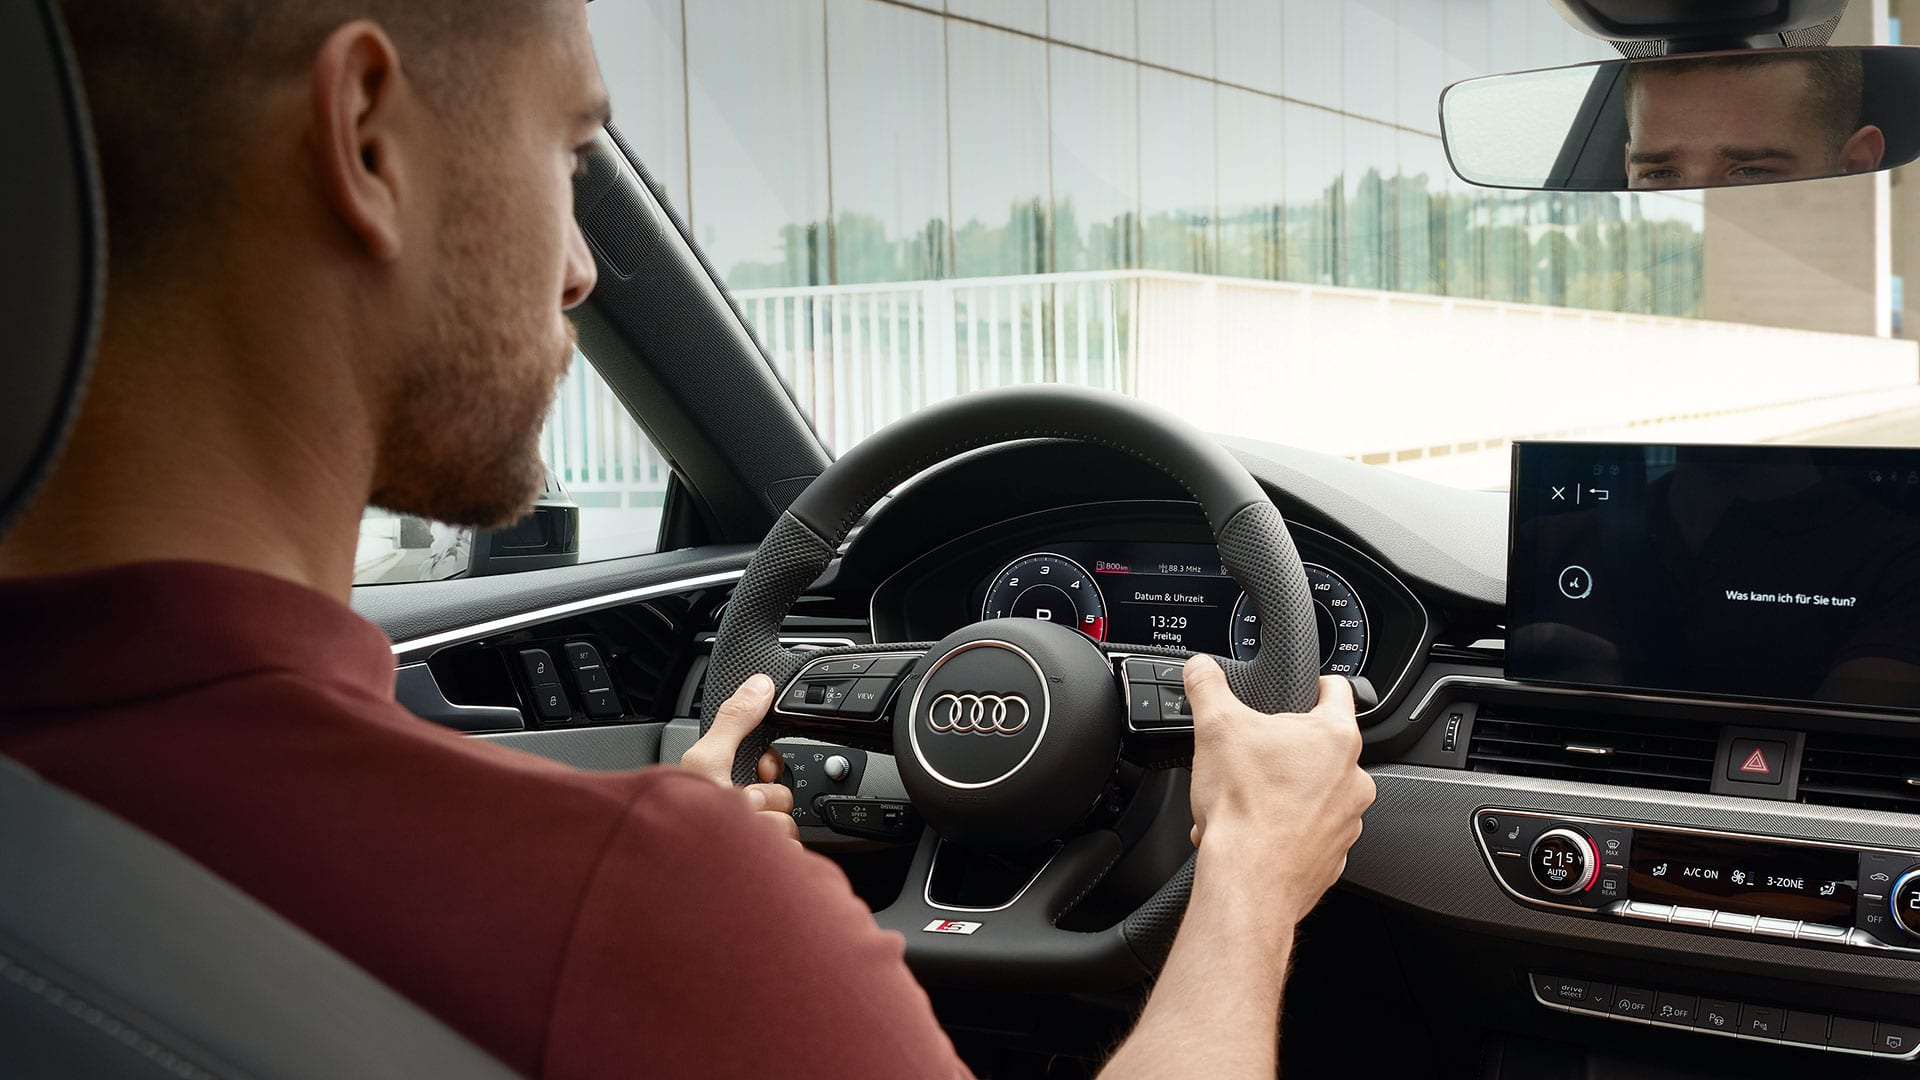 Audi virtual cockpit in the Audi A5 Sportback